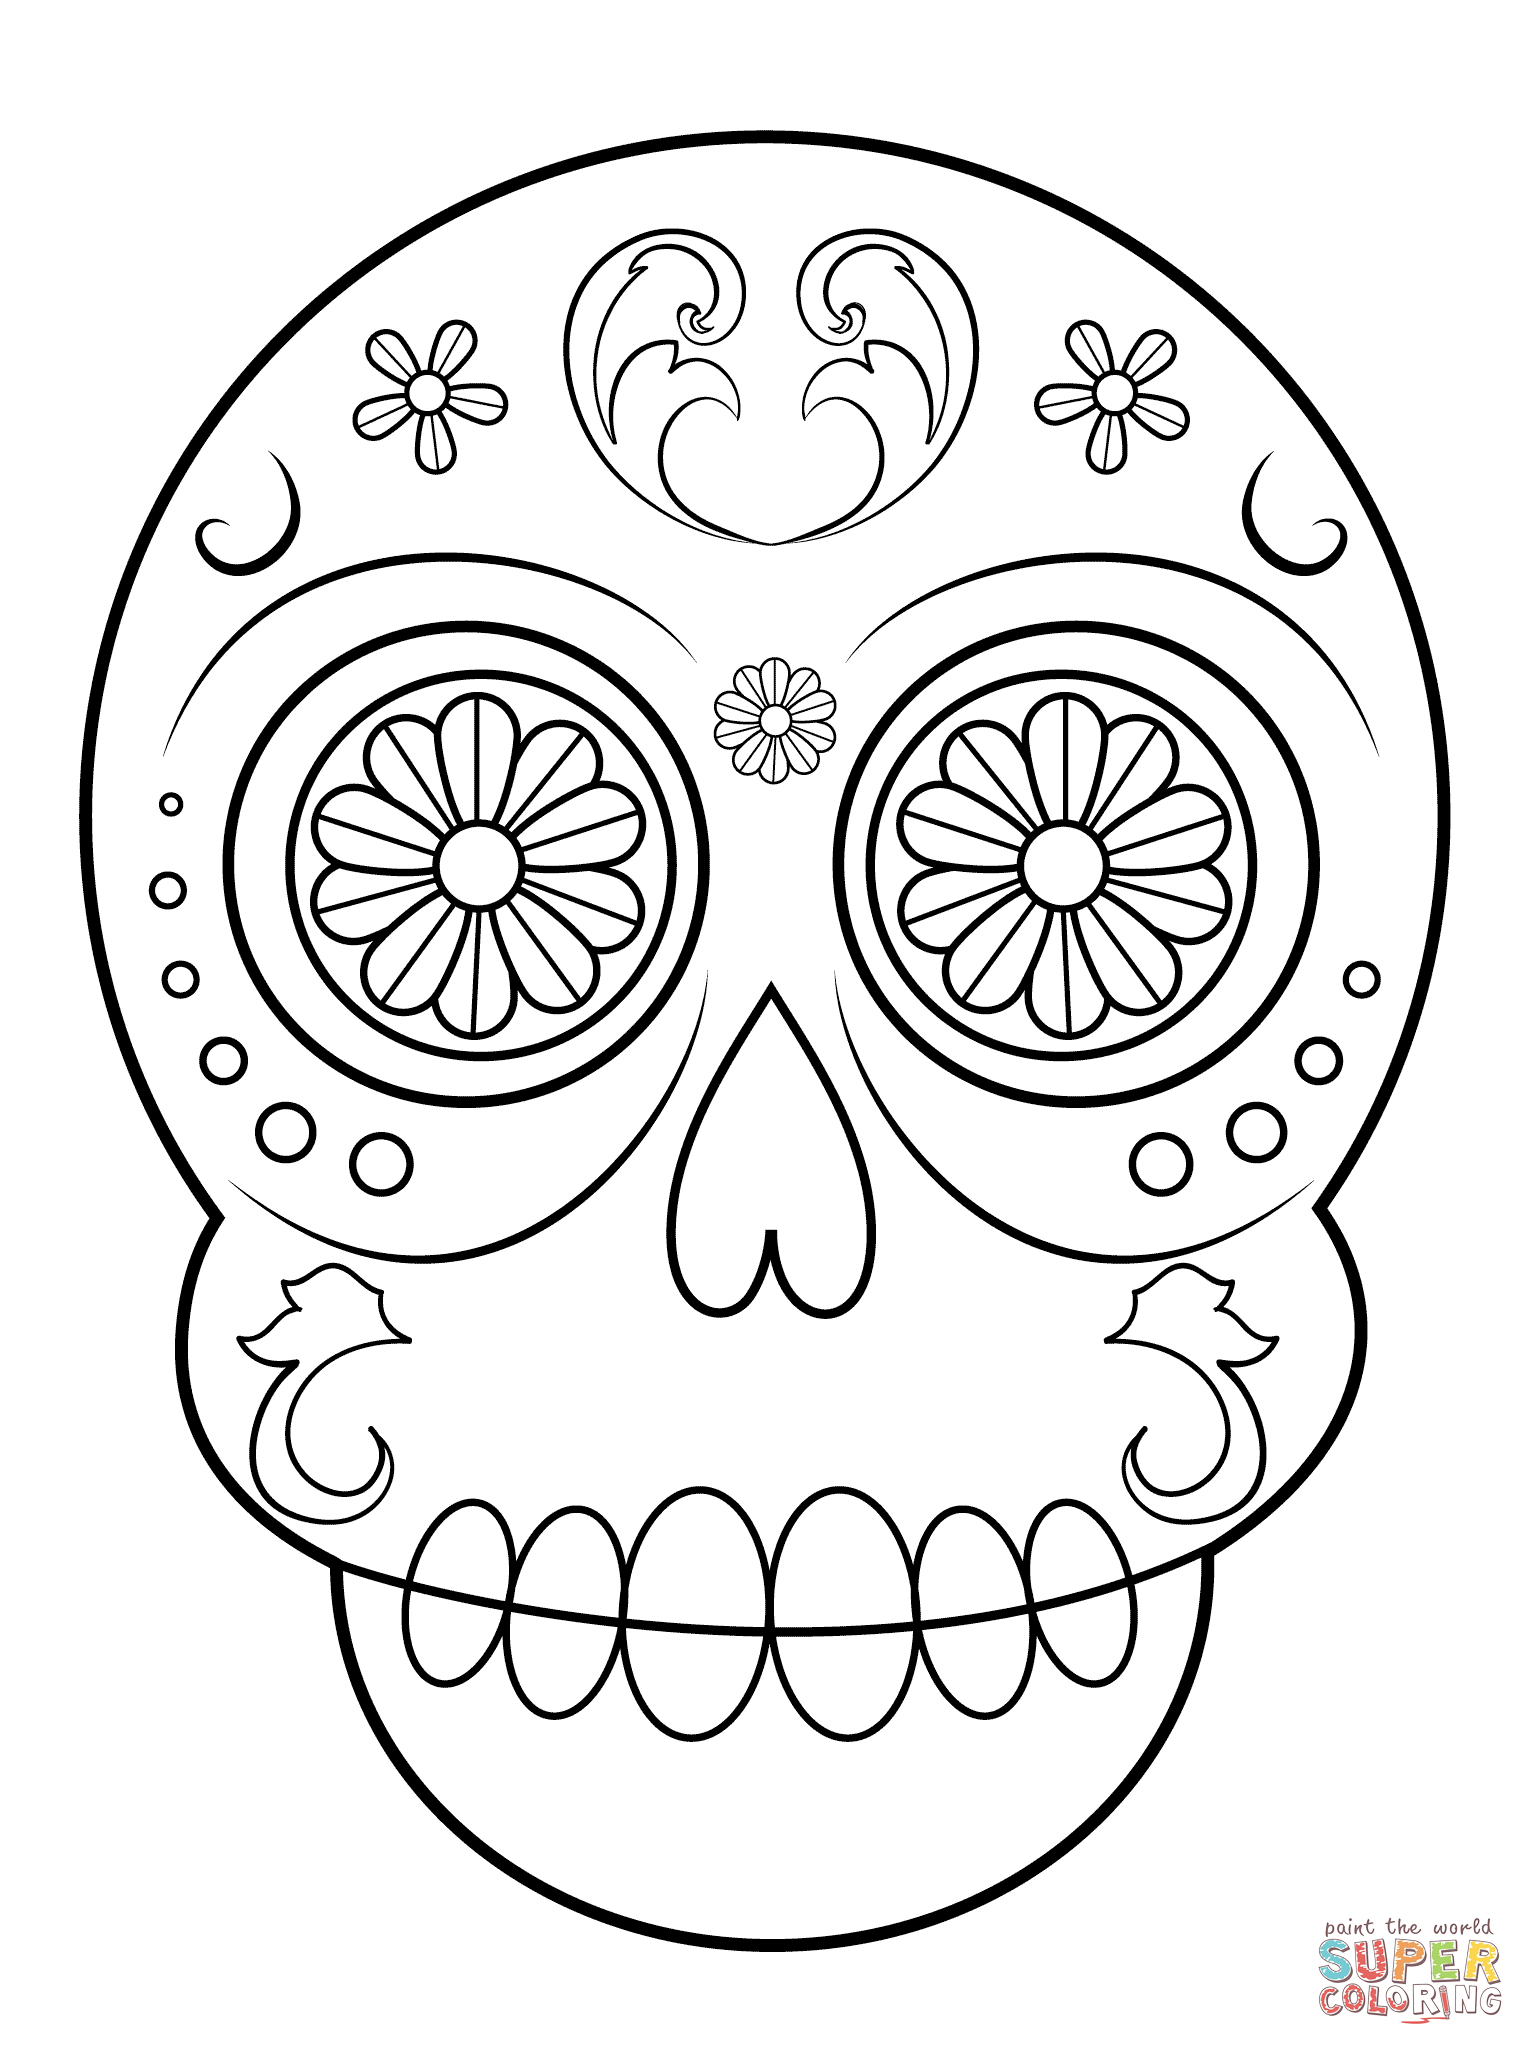 Sugar Skull coloring page | Free Printable Coloring Pages | 2046x1526